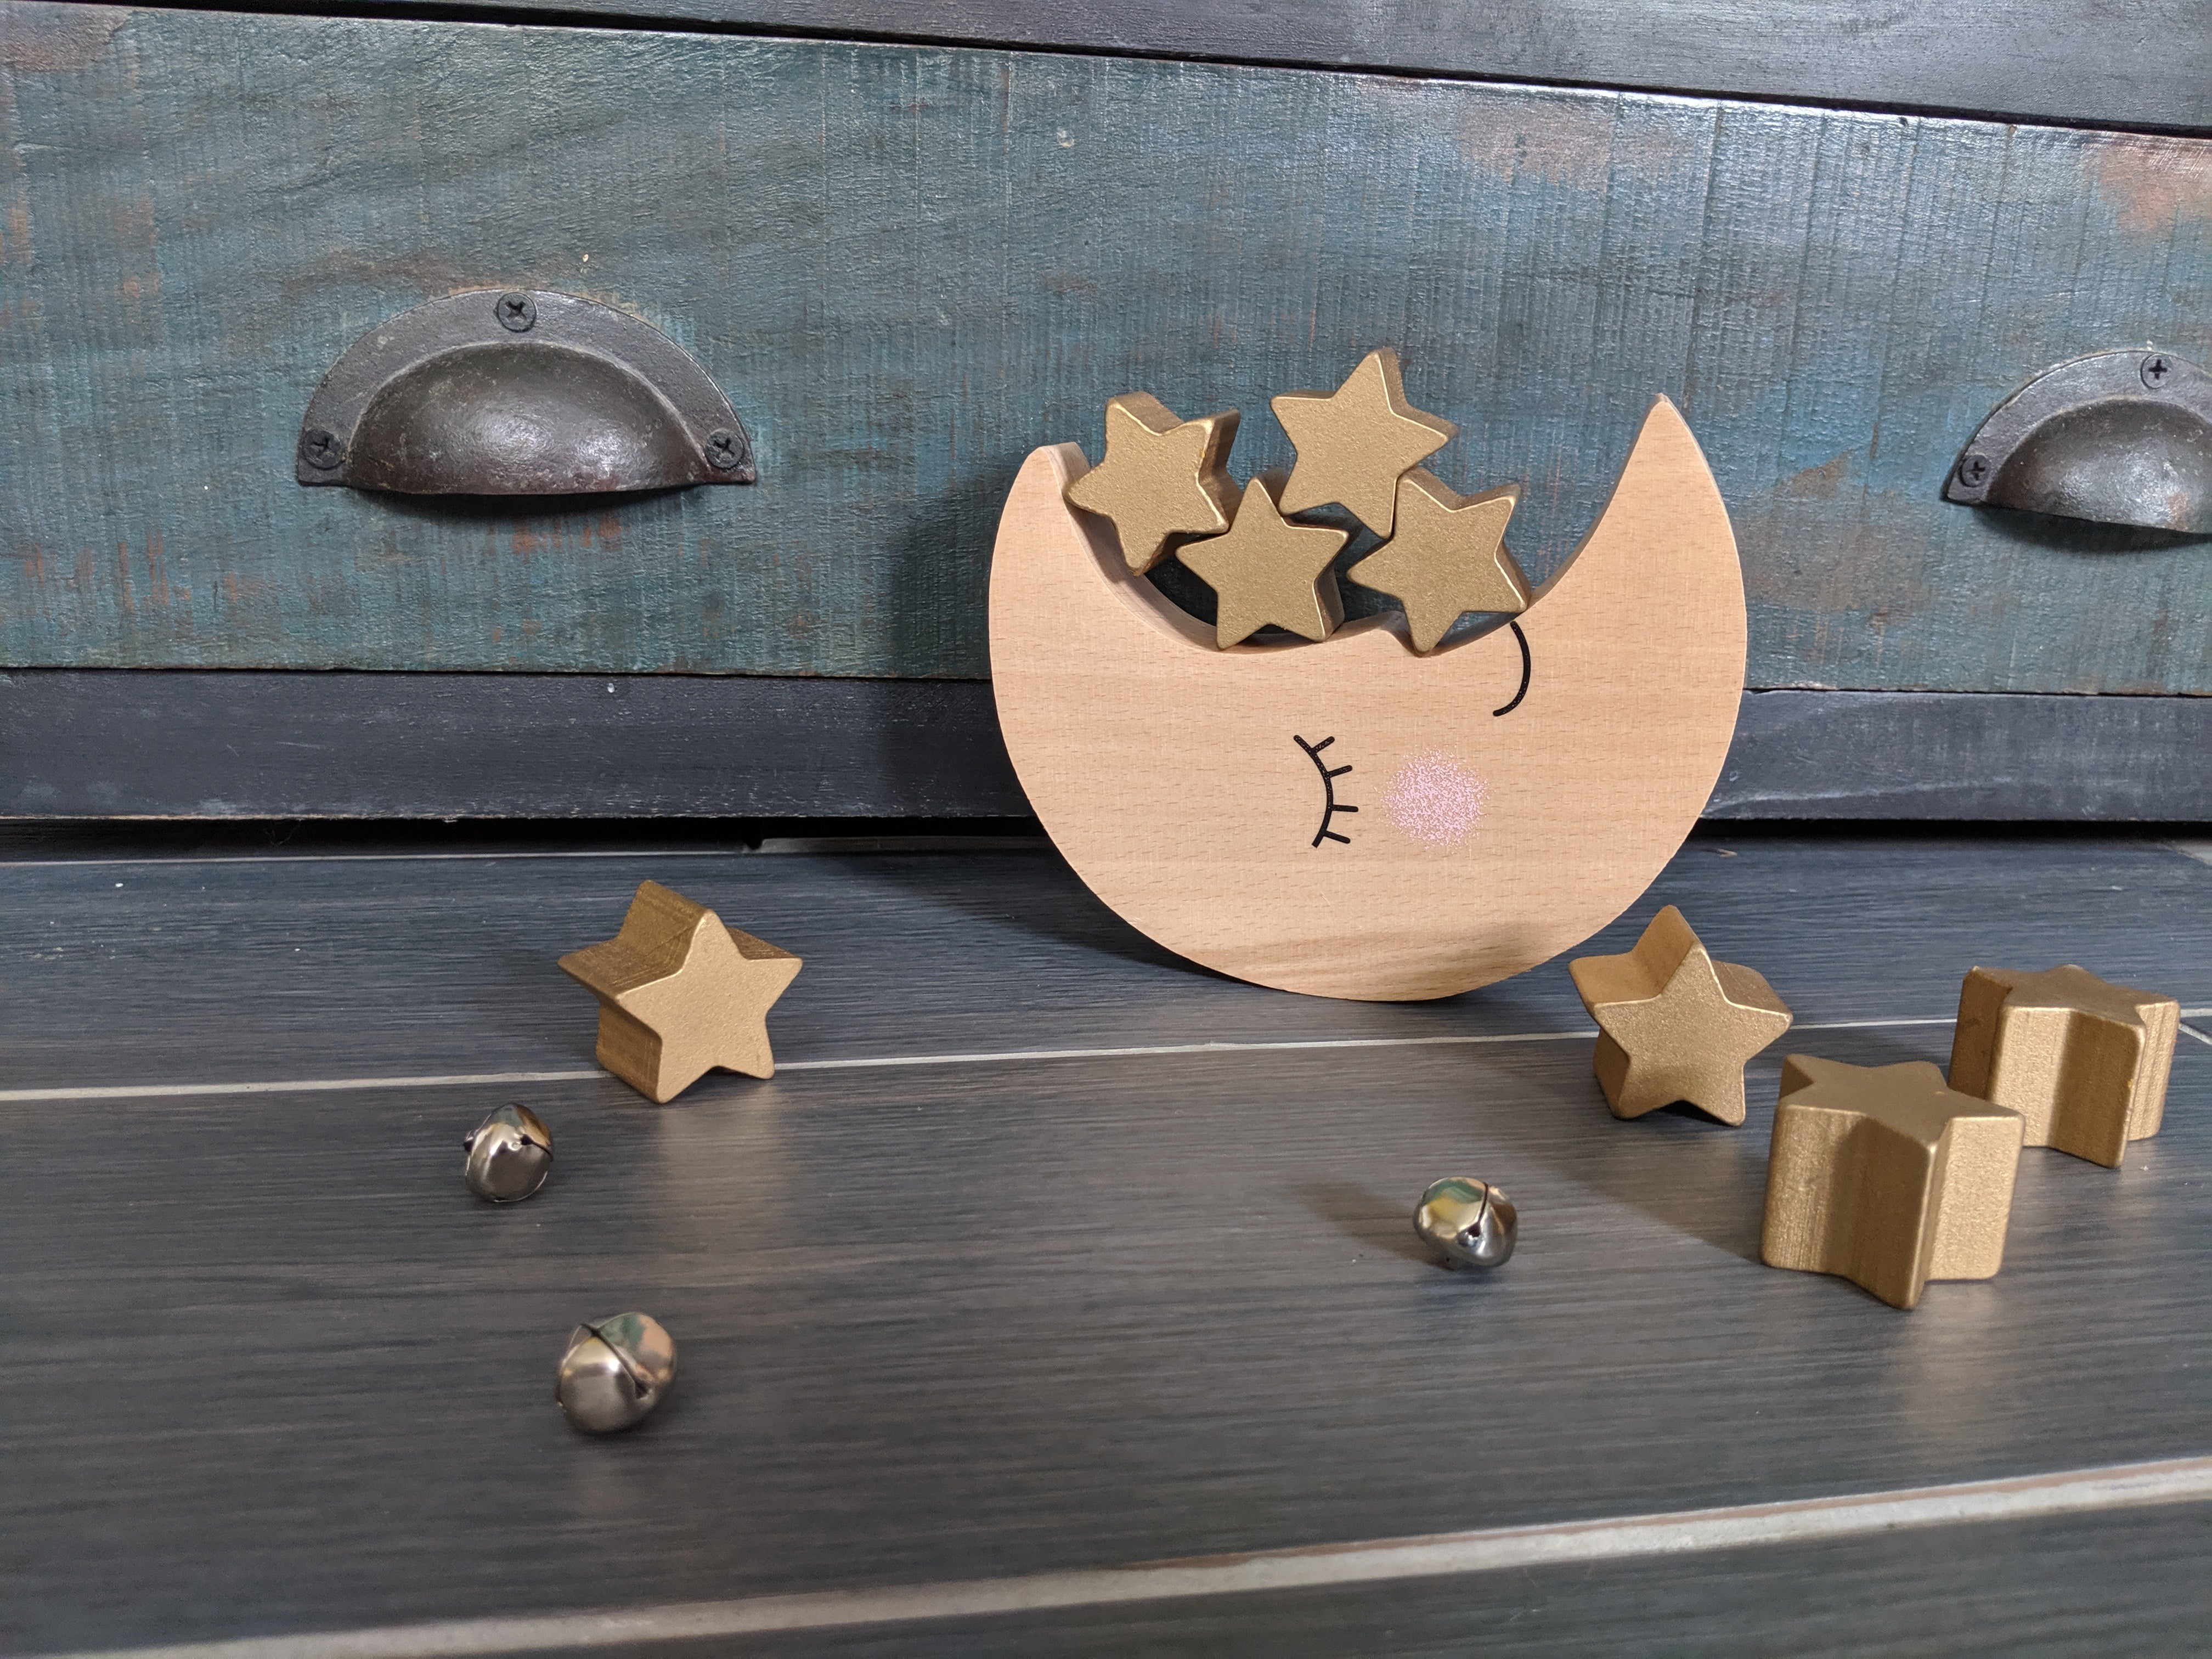 beautiful wooden moon and stars balancing game. Beech wood moon and MDF stars. Gorgeous scandi-style nursery decor.